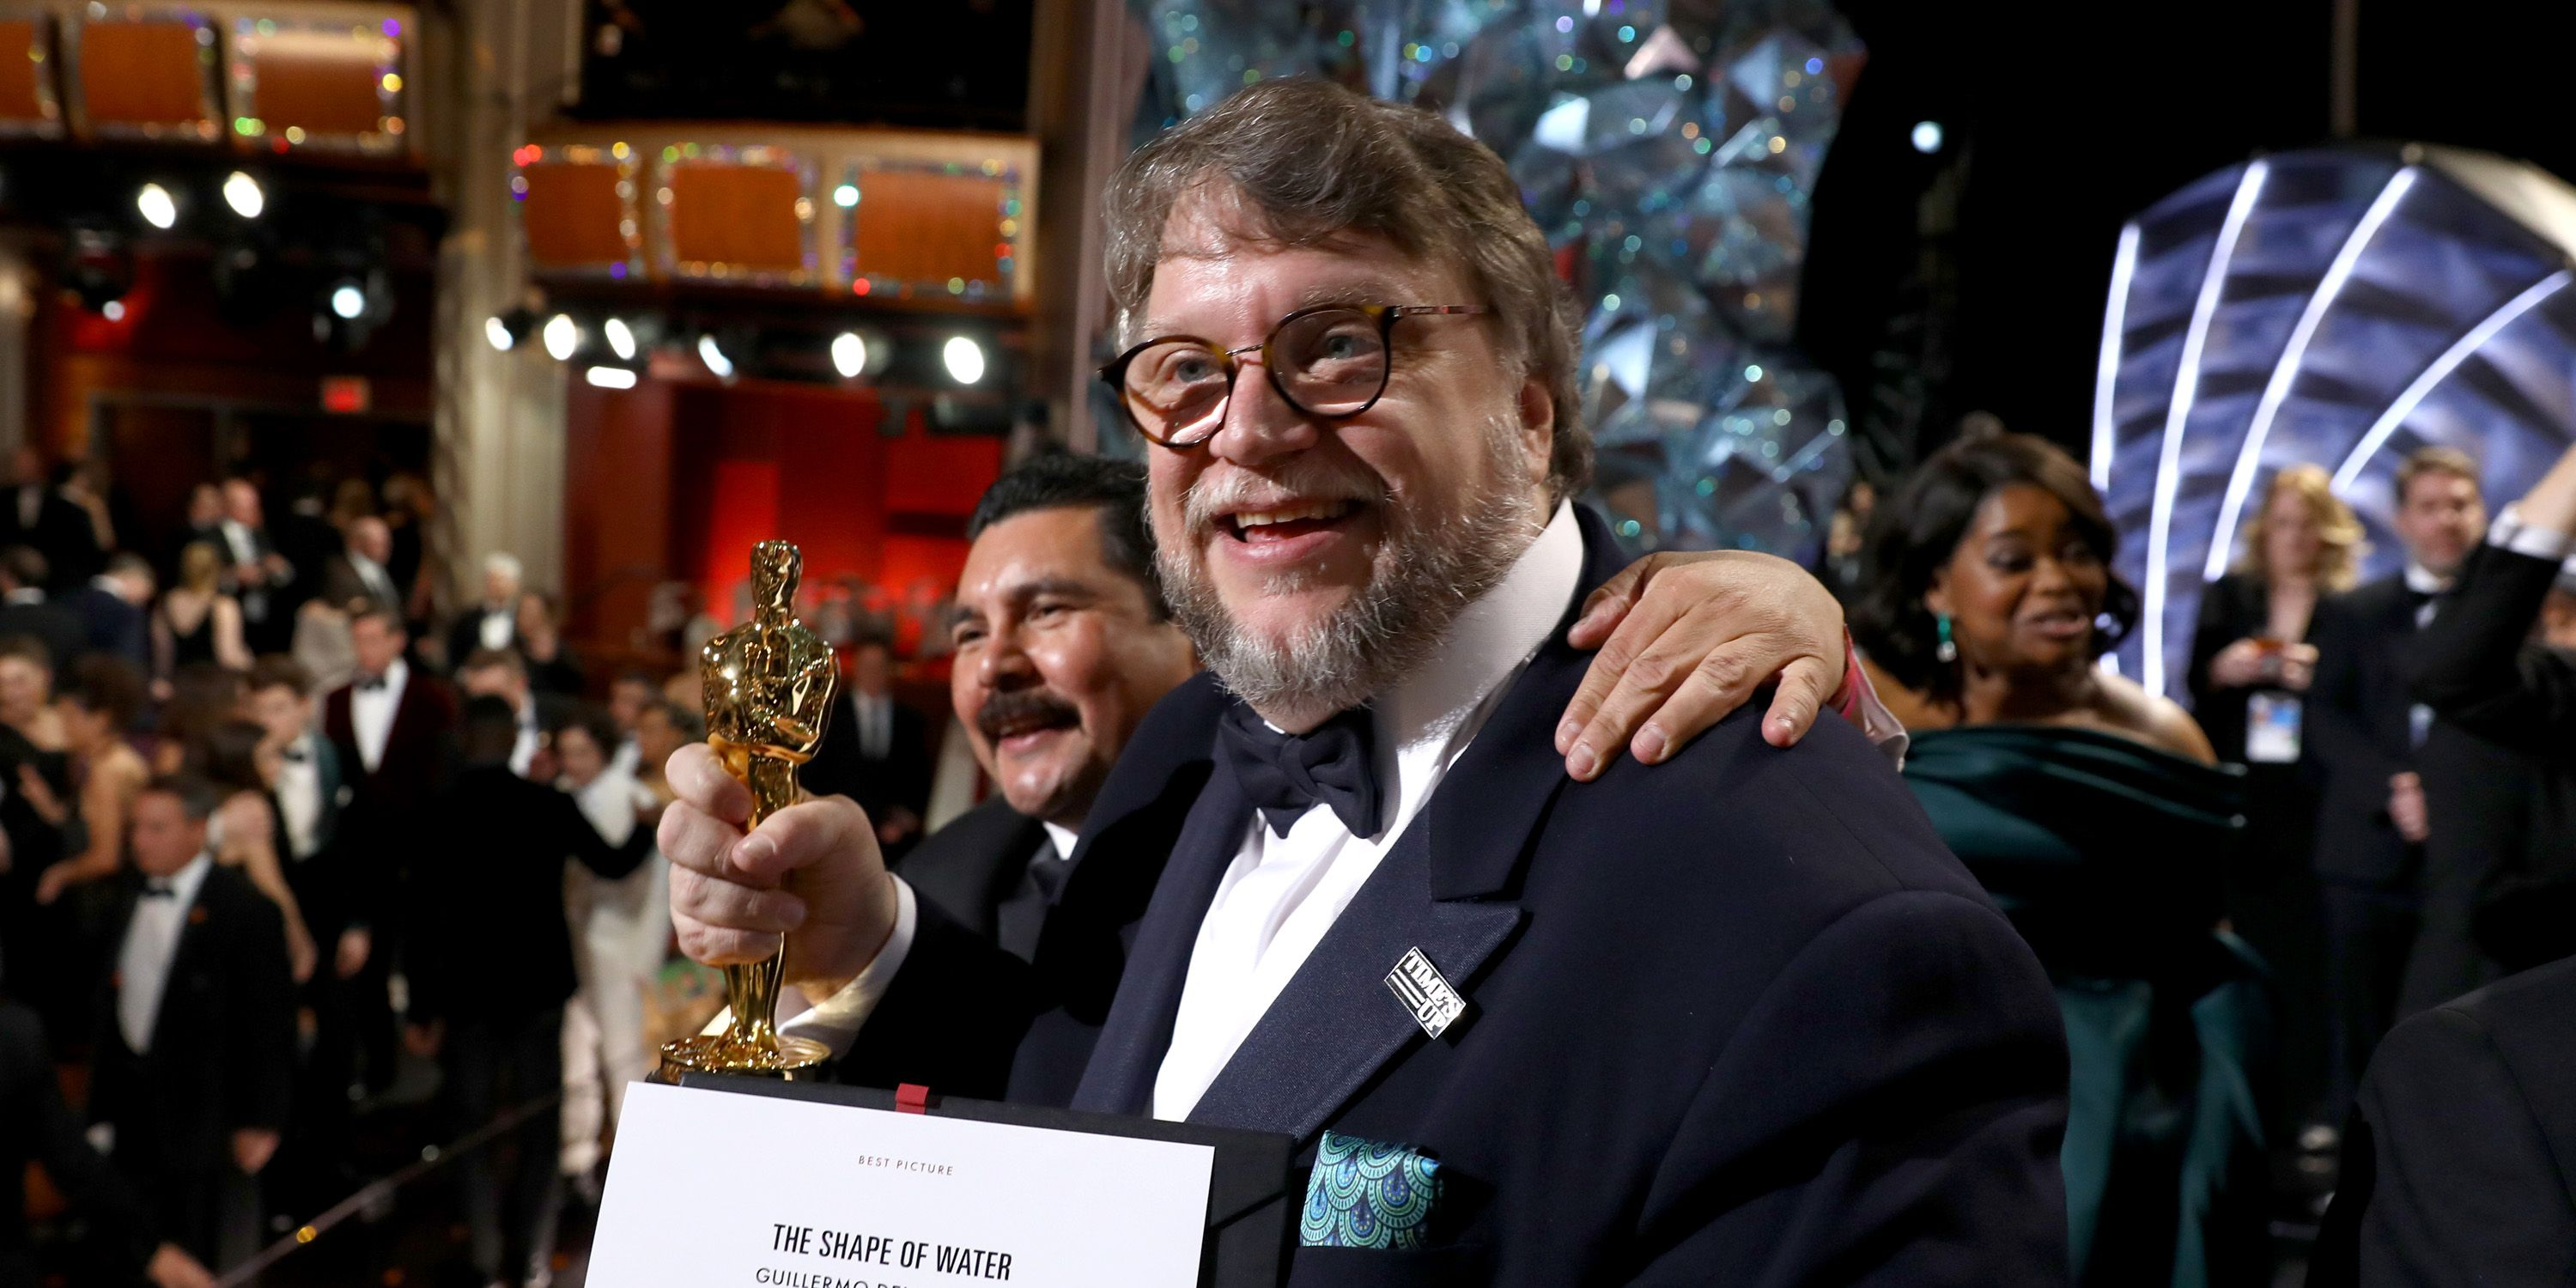 Guillermo del Toro with his Oscar and winner's card for The Shape of Water